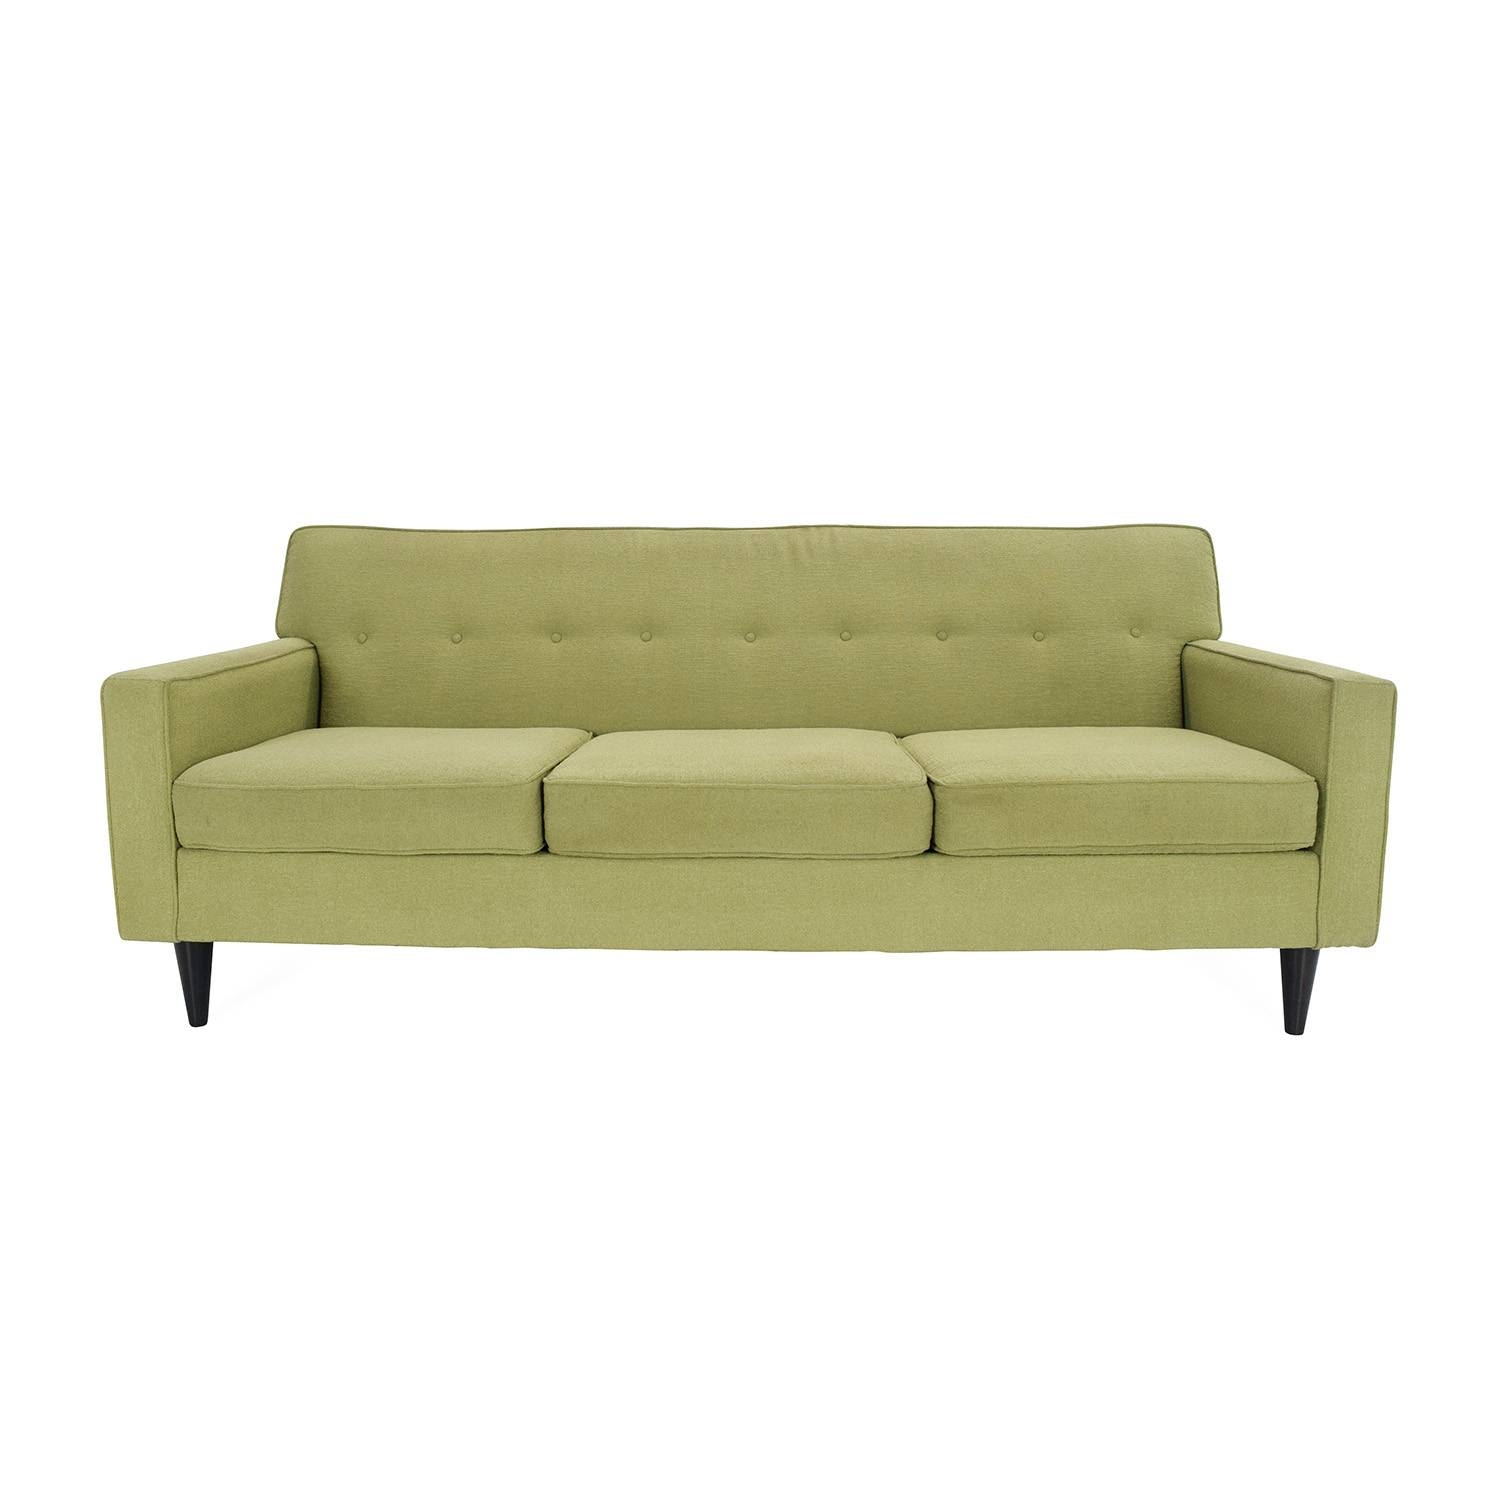 79% Off   Macy's Macy's Corona Sofa / Sofas Inside Macys Sofas (Photo 4 of 25)